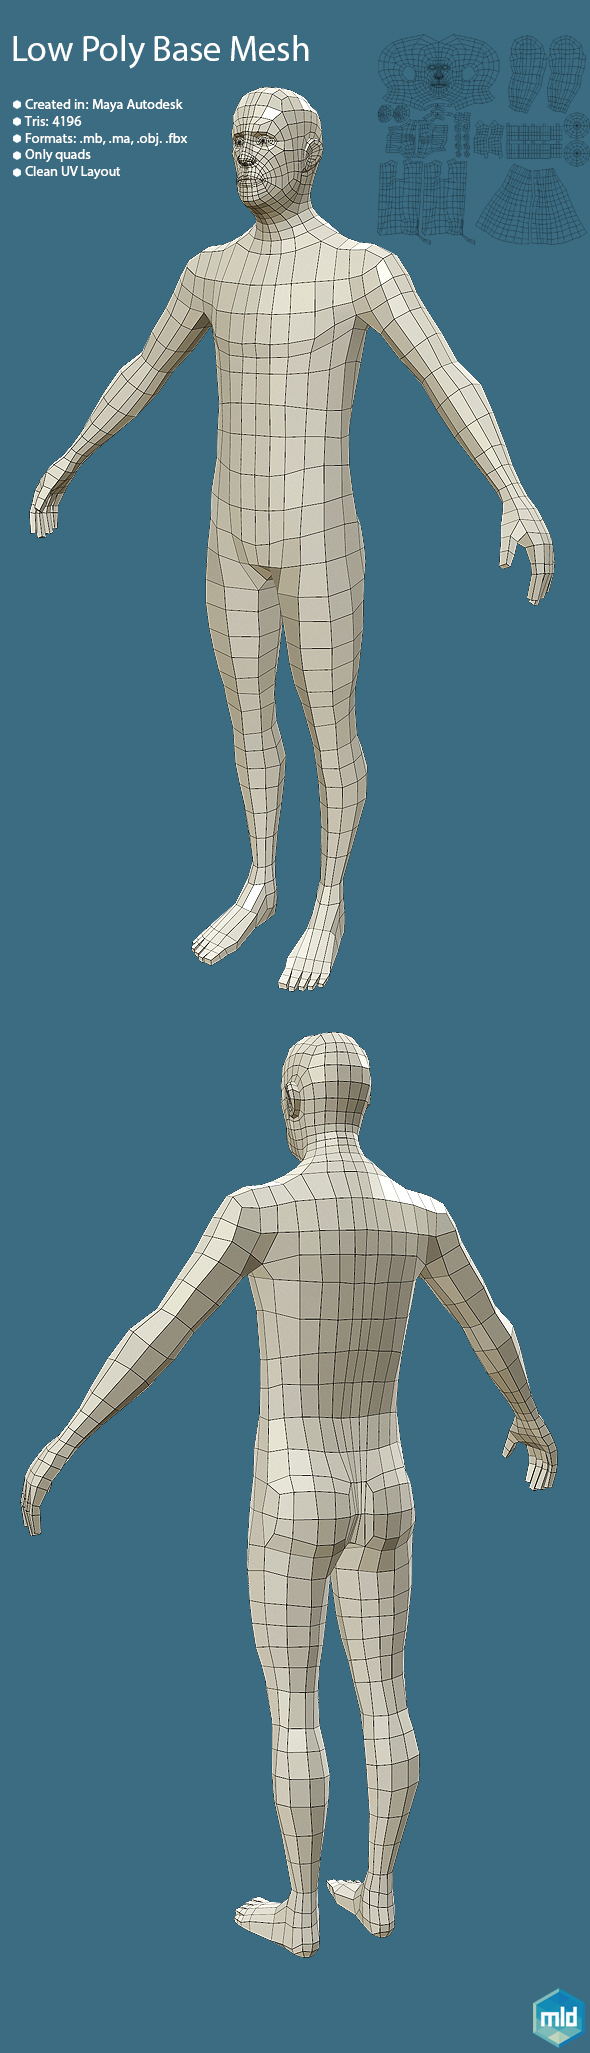 Low Poly Human Base Mesh  - 3DOcean Item for Sale